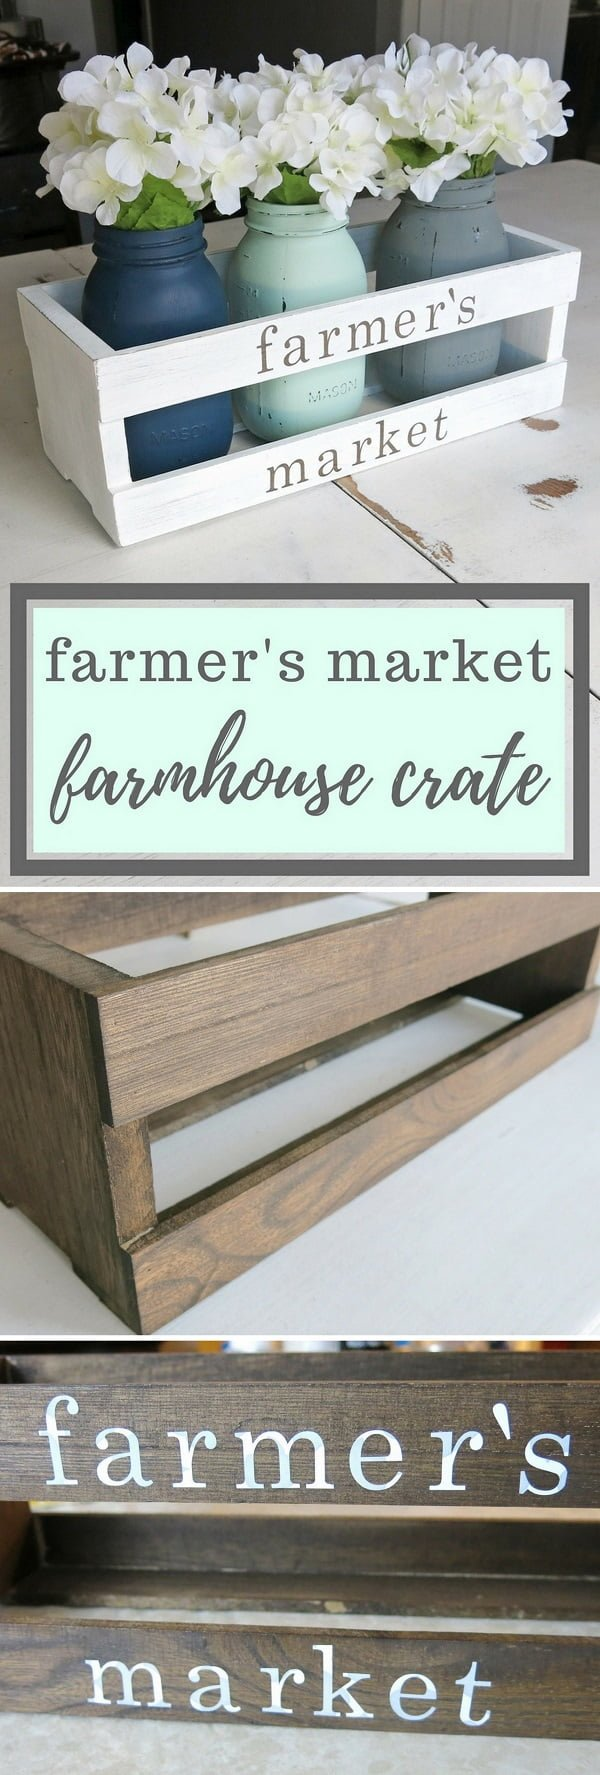 Check out the tutorial on how to make this #DIY #farmhouse crate centerpiece with #masonjars #homedecor #woodworking